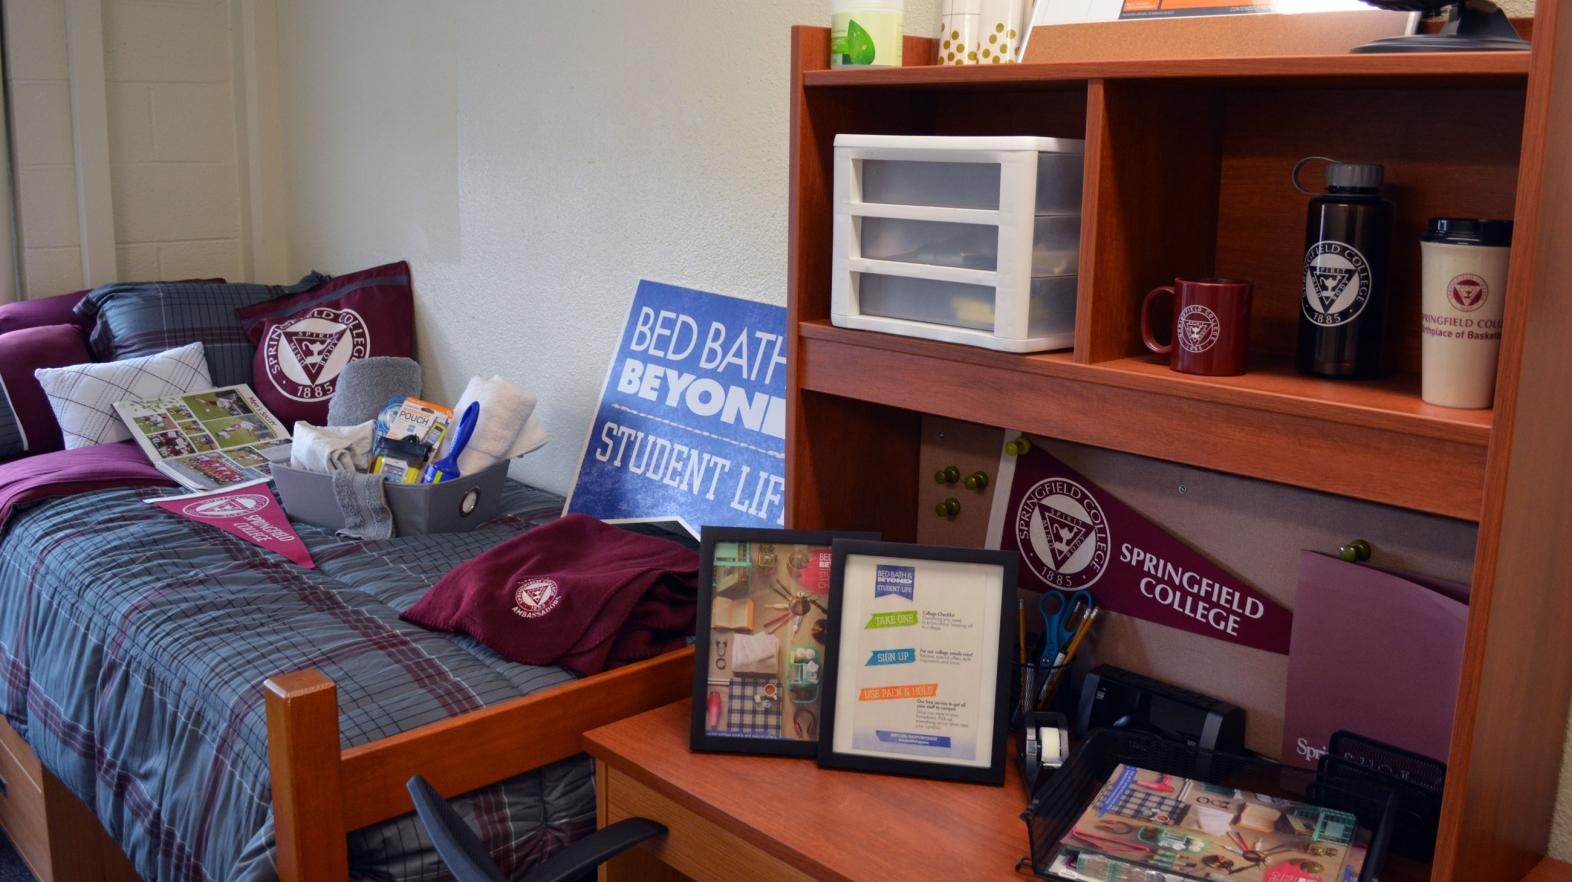 A Massasoit Hall residence room with bed and desk adorned with Springfield College gear.